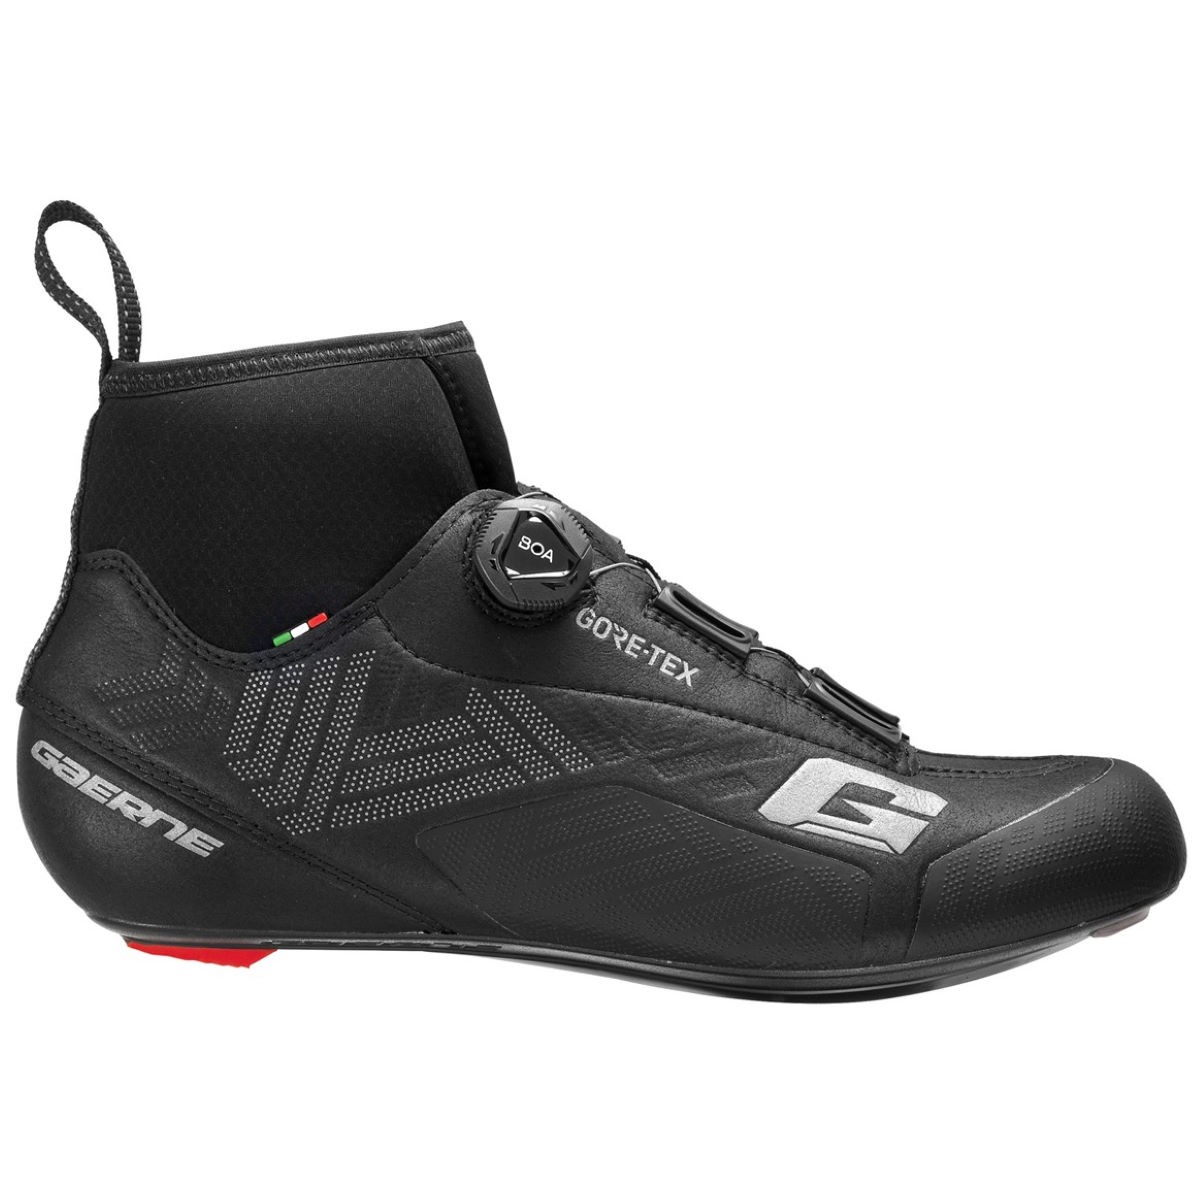 Gaerne Icestorm Road Goretex Boots - 48 Black  Cycling Shoes